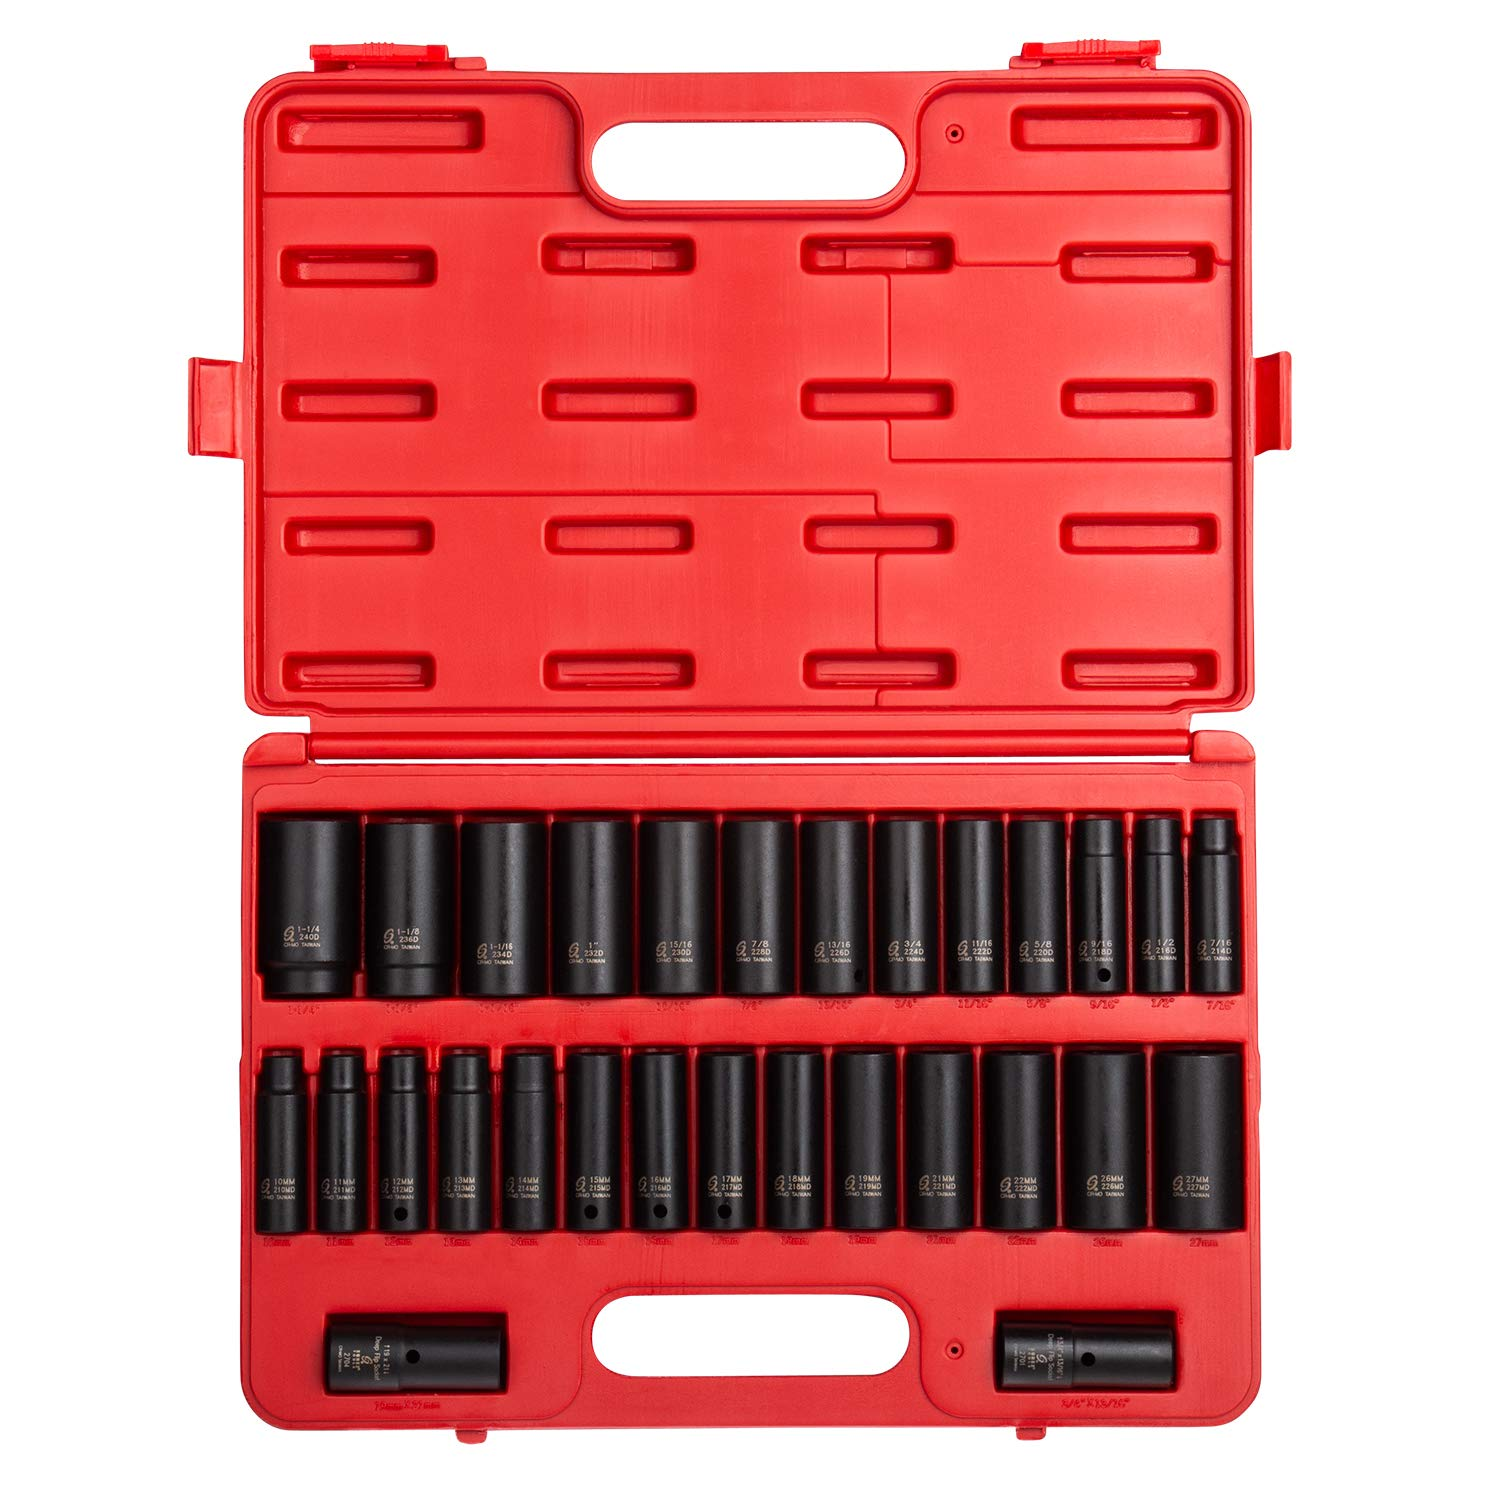 Sunex 5153DD, 1/2 Inch Drive Master Impact Socket Set, Double Deep, 29-Piece, SAE/Metric, 7/16'' - 1-1/4'', 10mm-27mm, Cr-Mo Steel, Radius Corner Design, Dual Size Markings, Heavy Duty Storage Case by Sunex Tools